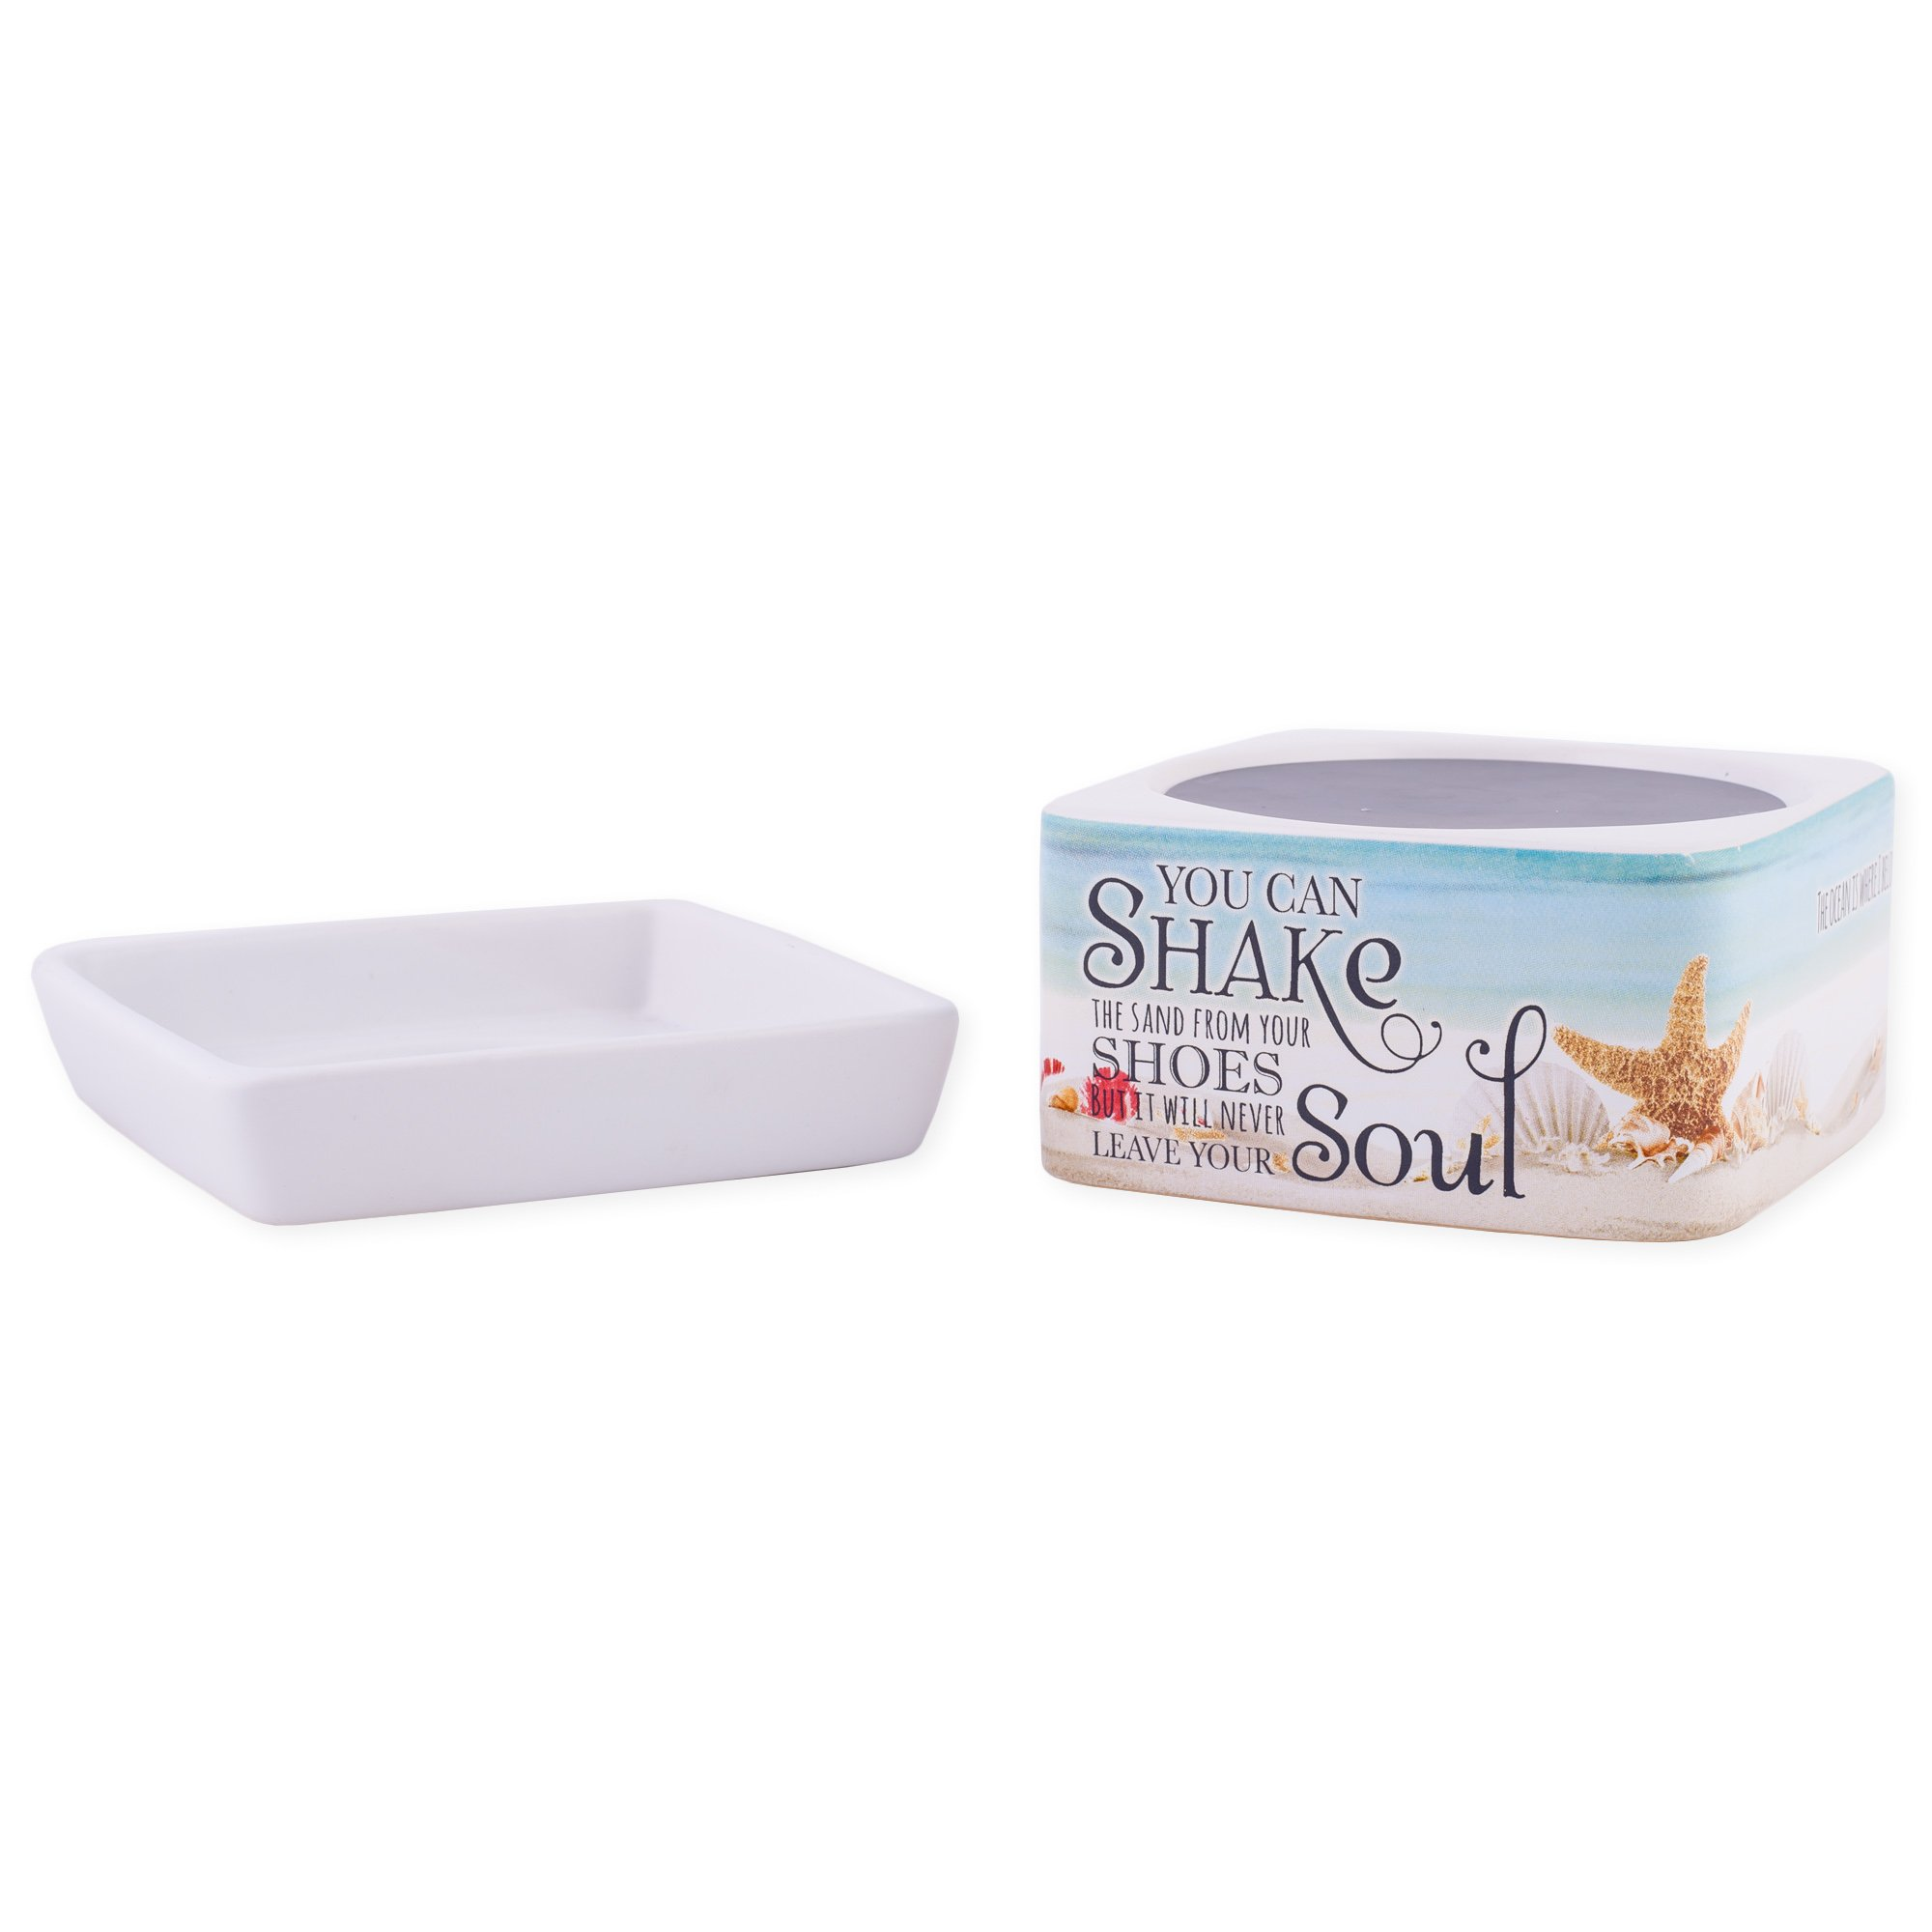 Shake Sand from Shoes White Stoneware Electric 2-in-1 Jar Candle and Wax Tart Oil Warmer by Elanze Designs (Image #5)